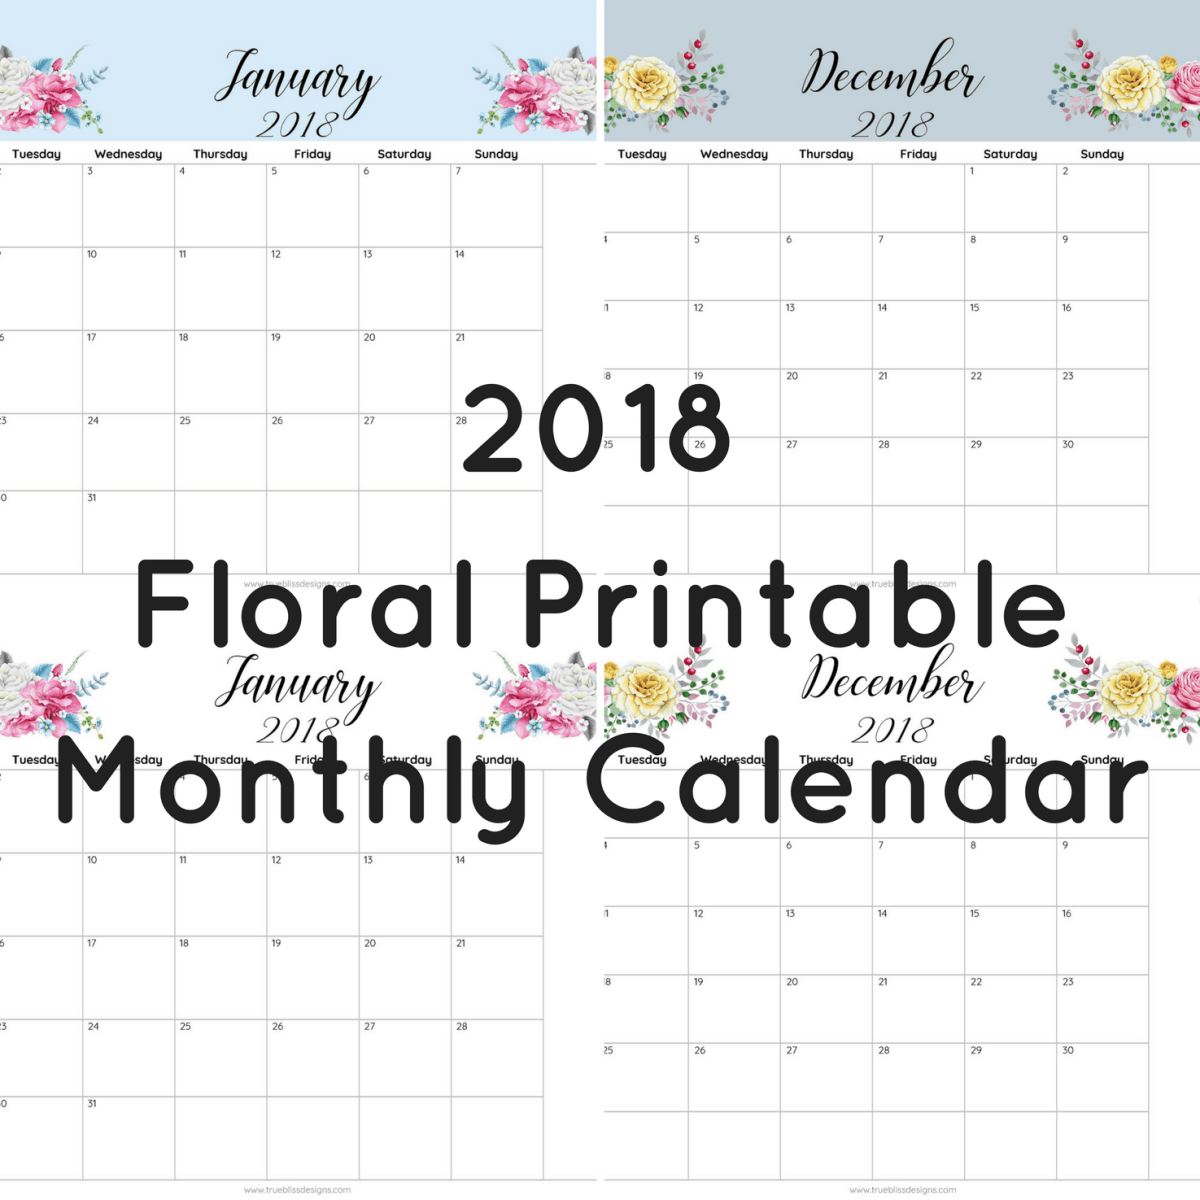 2018 Floral Printable Monthly Calendar